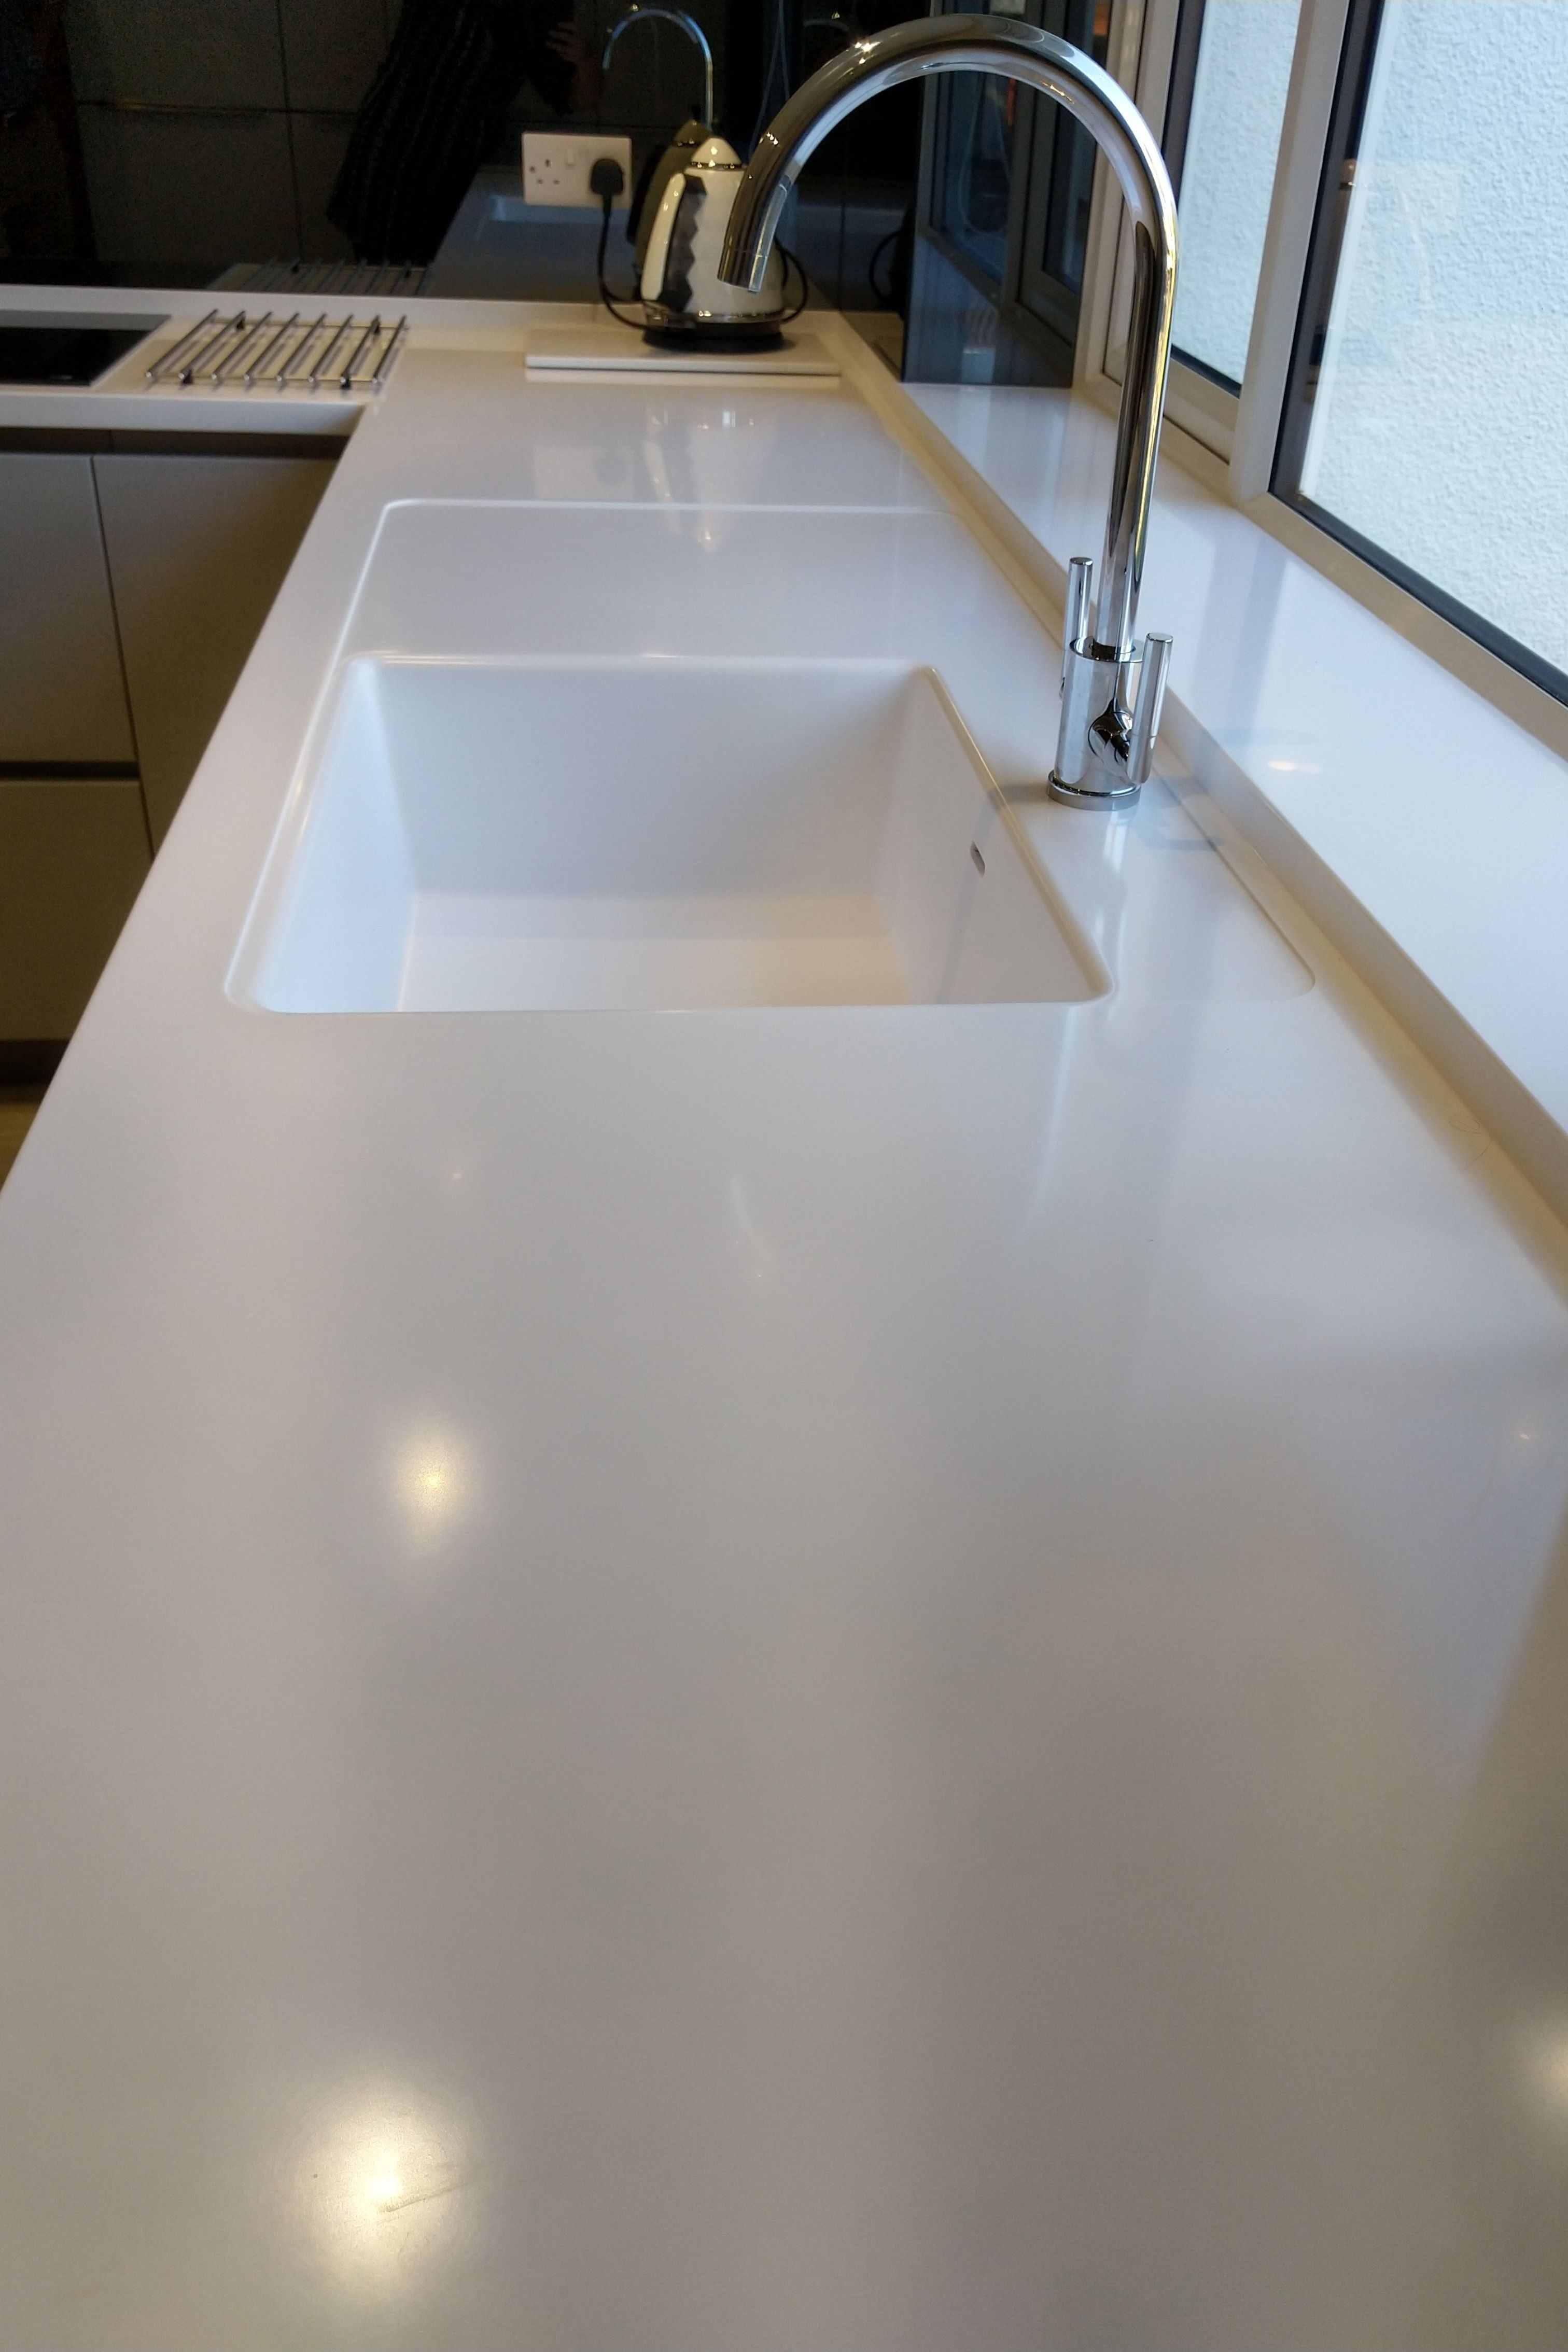 This Installation Features A Corian Moulded Spicy 970 Sink With A